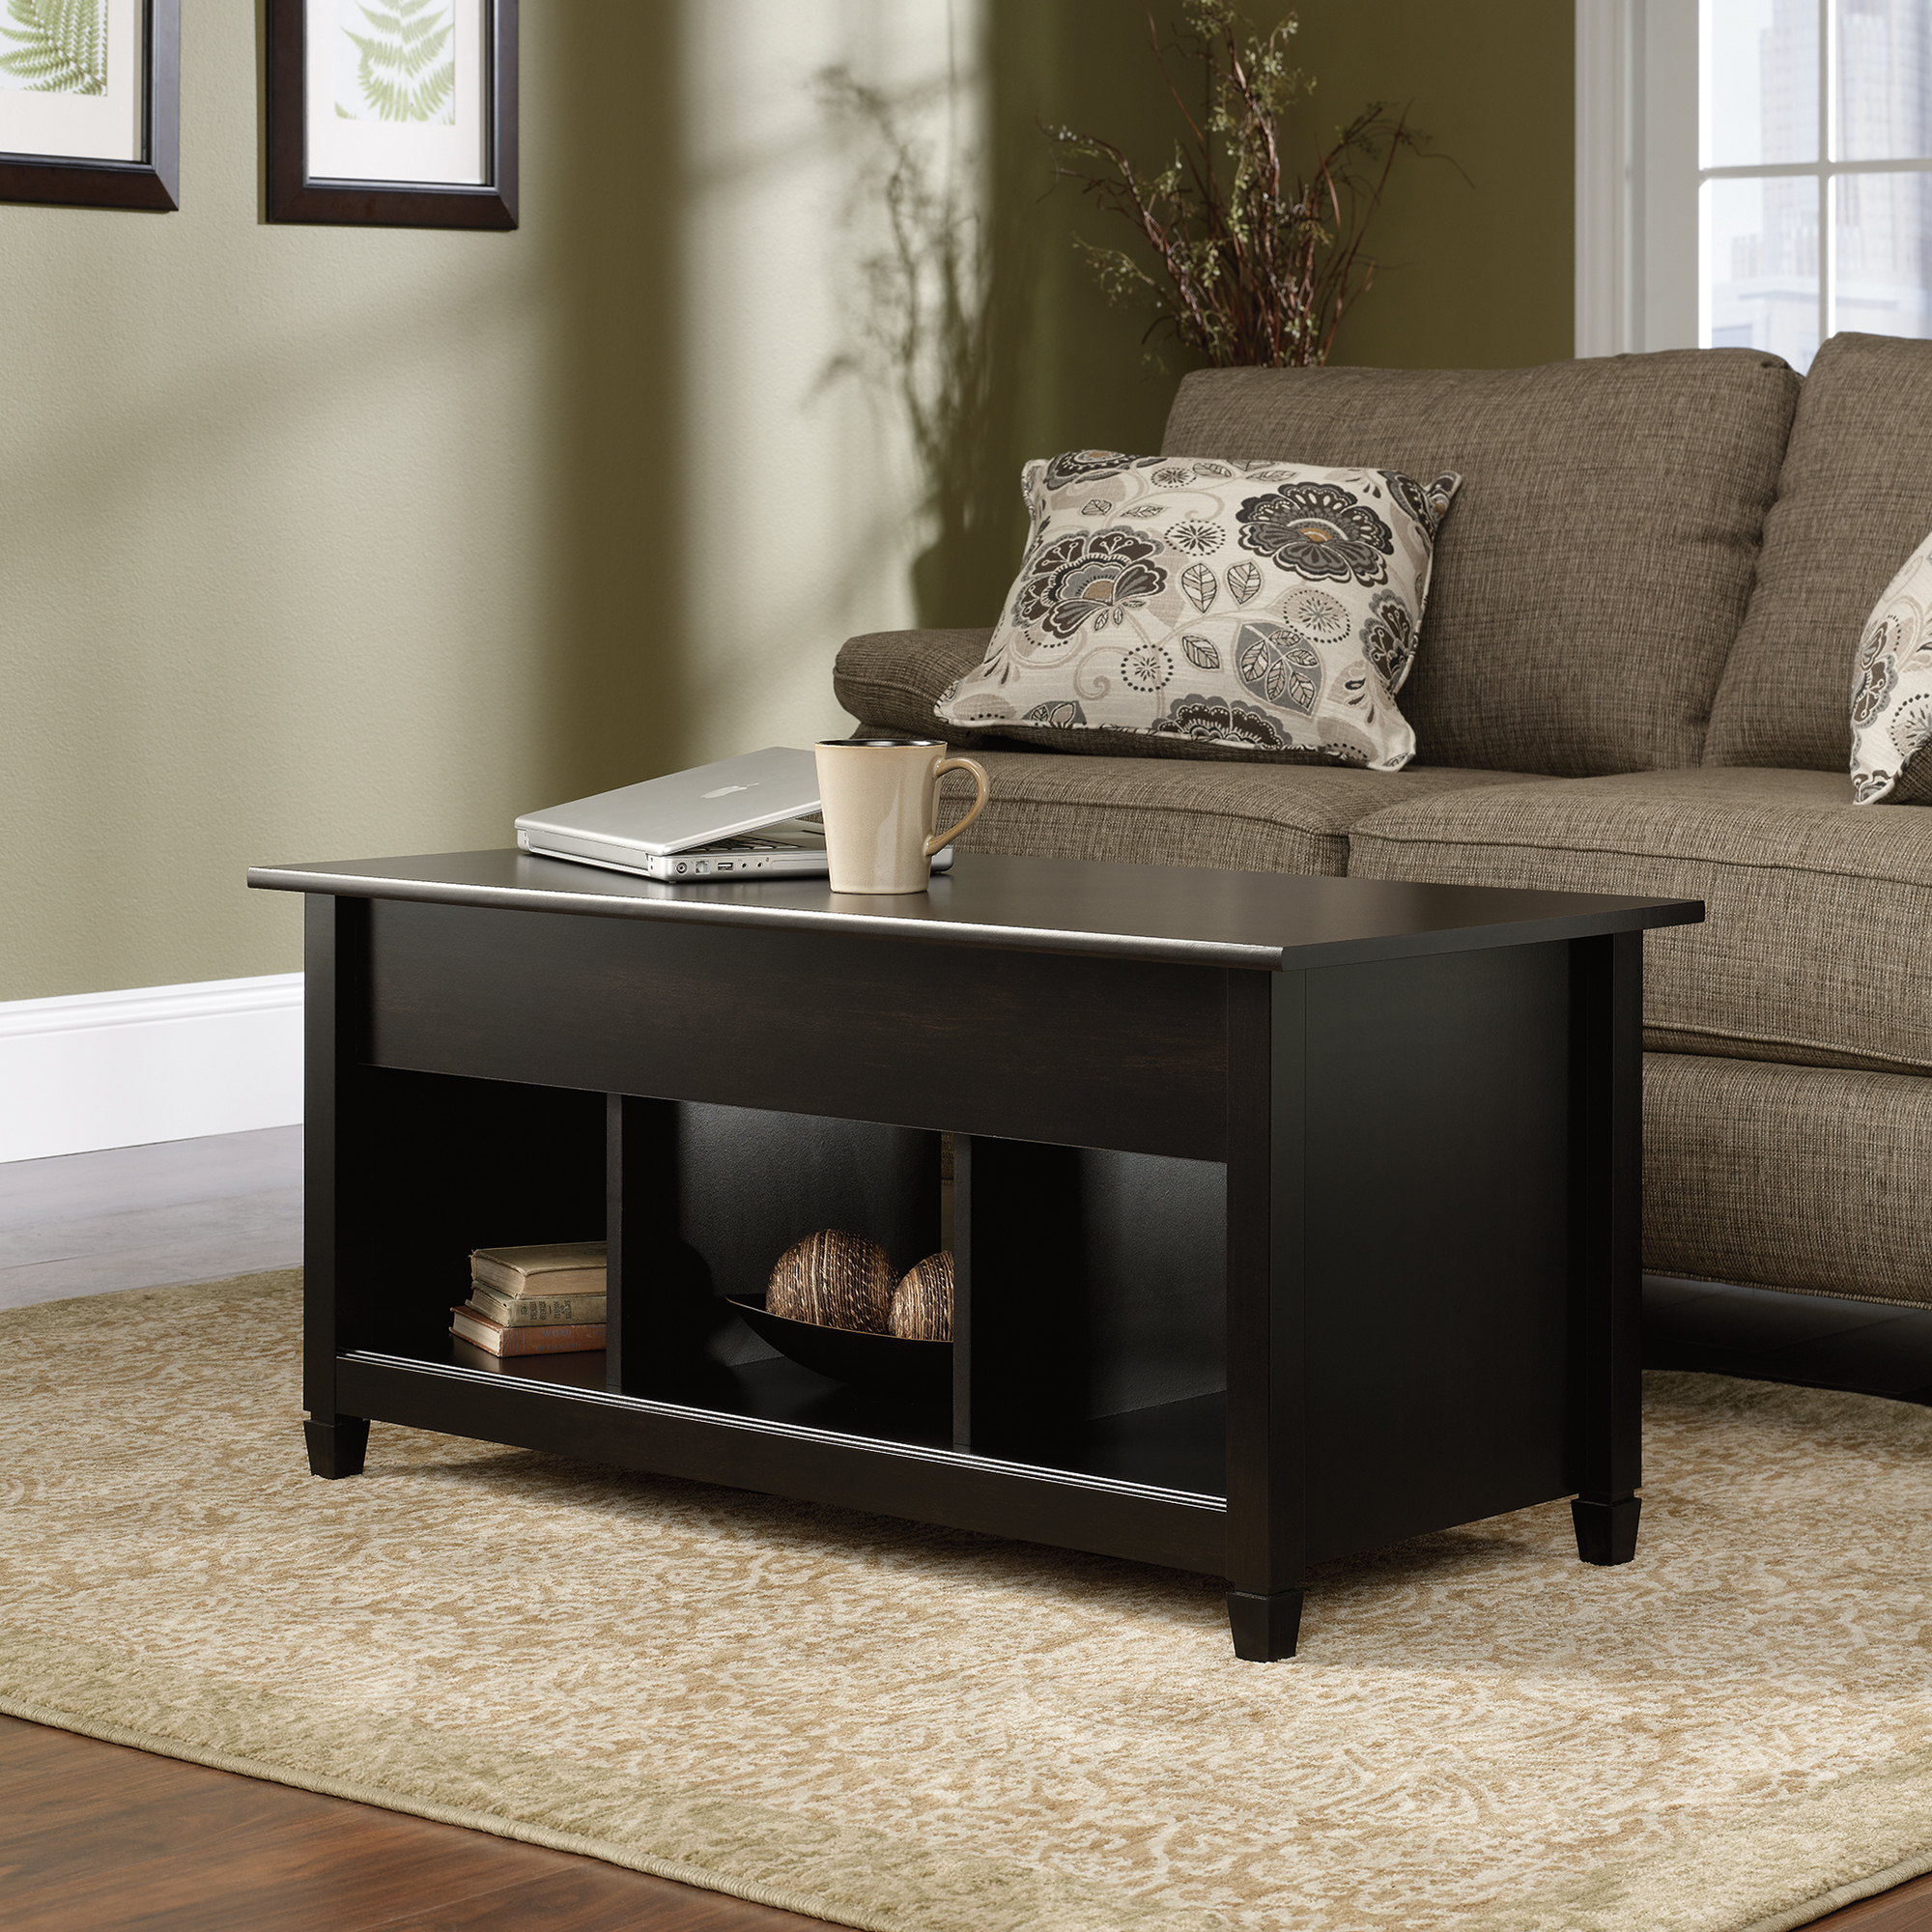 Sauder Edge Water Lift Top Coffee Table – Sauder The